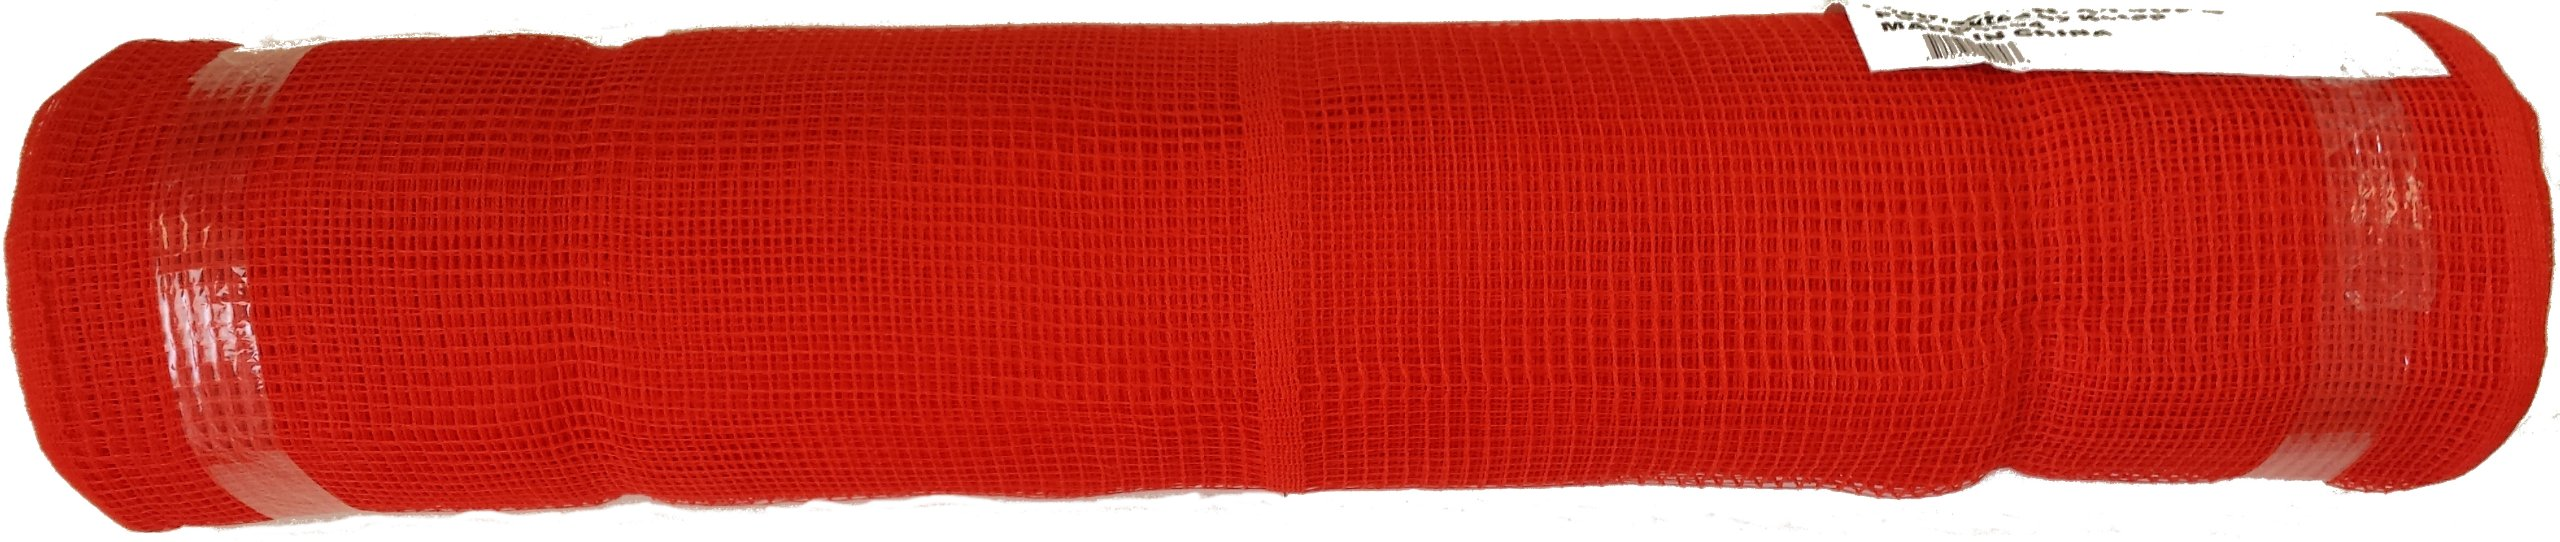 Kotap 8.5-ft x 150-ft Fire Retardant Vertical Safety Netting, High Visibility Orange, Item: SN-86150FR